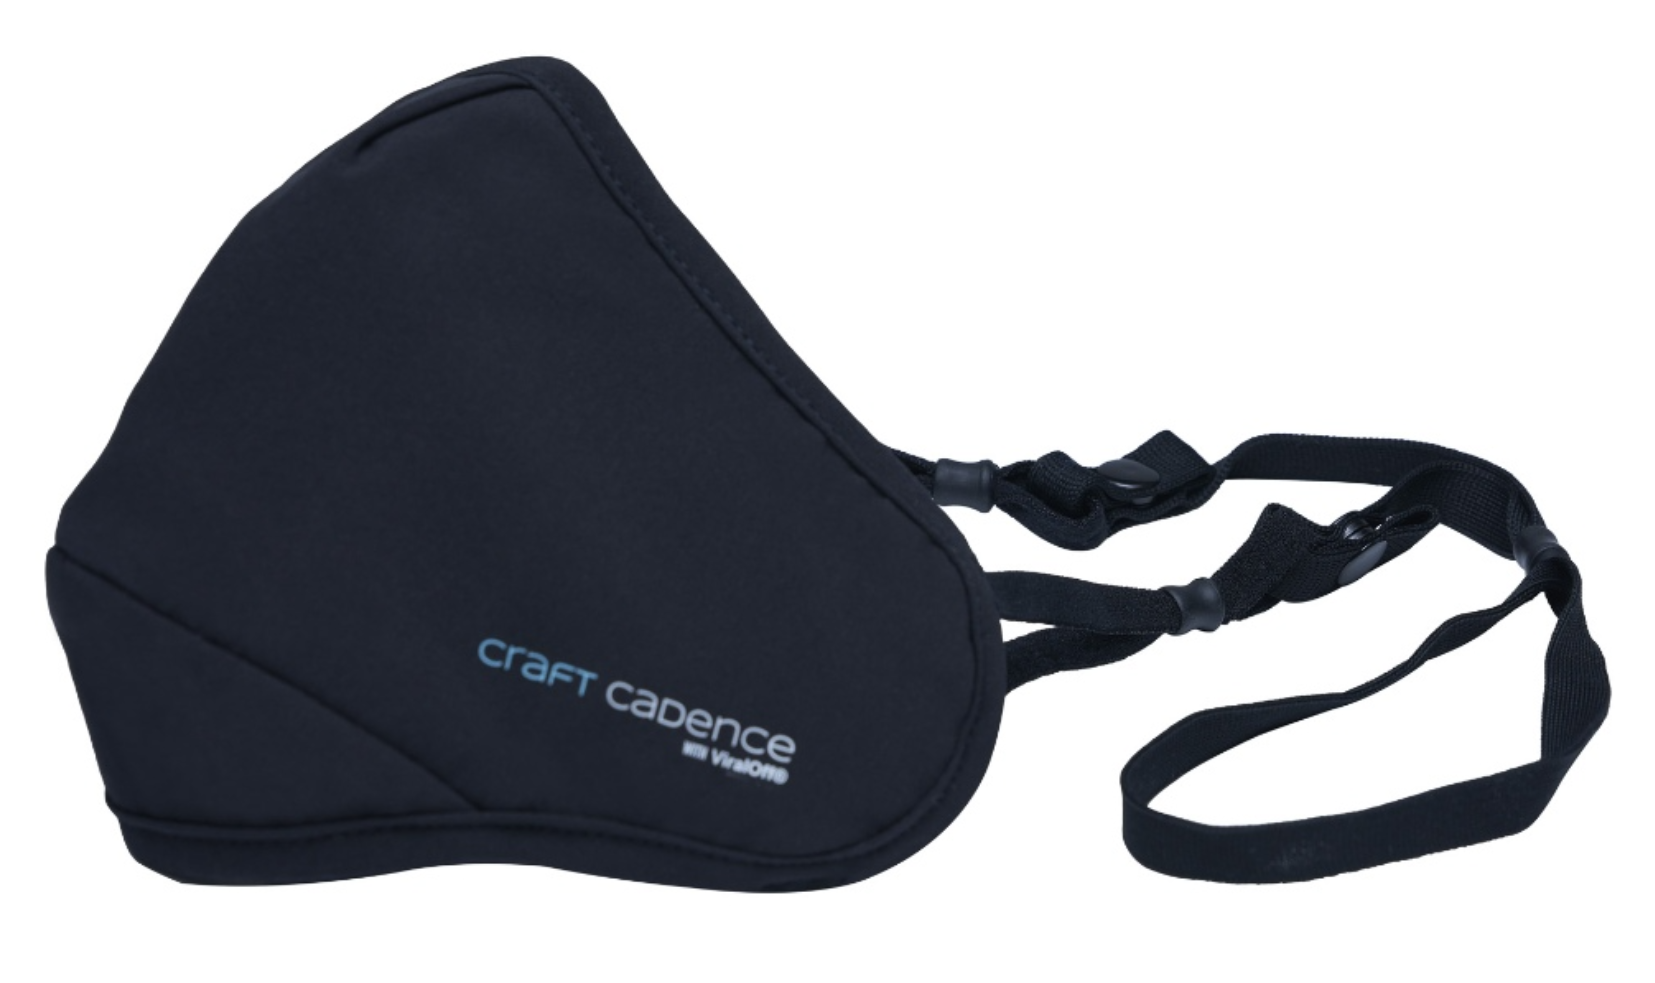 Craft Cadence Launches First-Ever NanoFiber Pollution Mask Designed with Polygiene ViralOff and Anti-odor Technologies 1